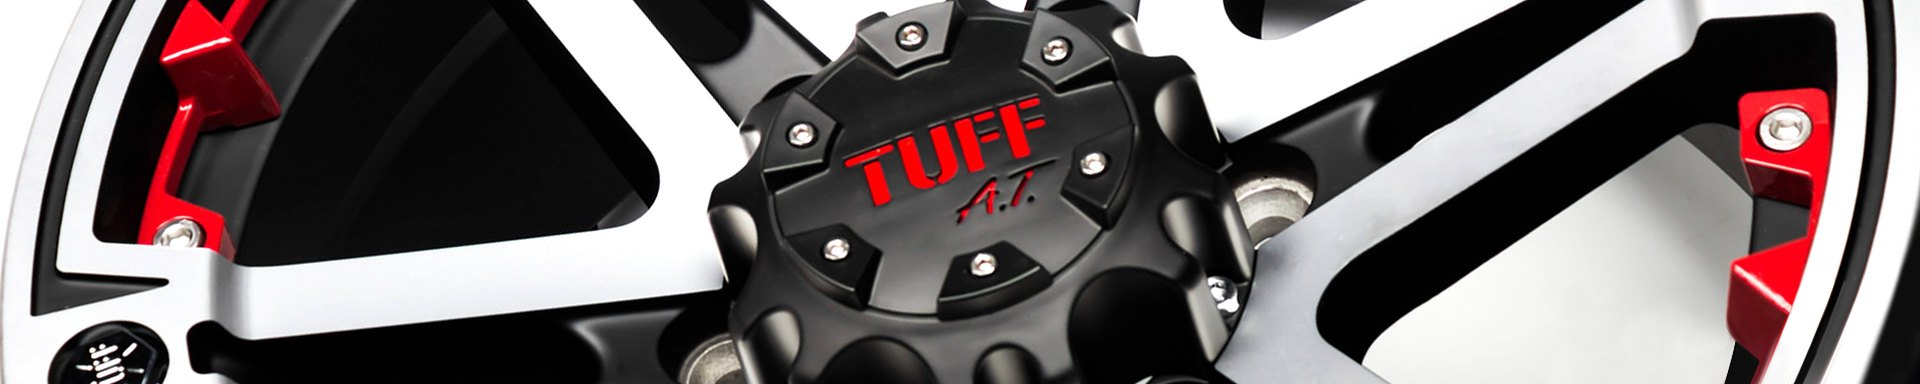 Universal TUFF CUSTOM WHEELS